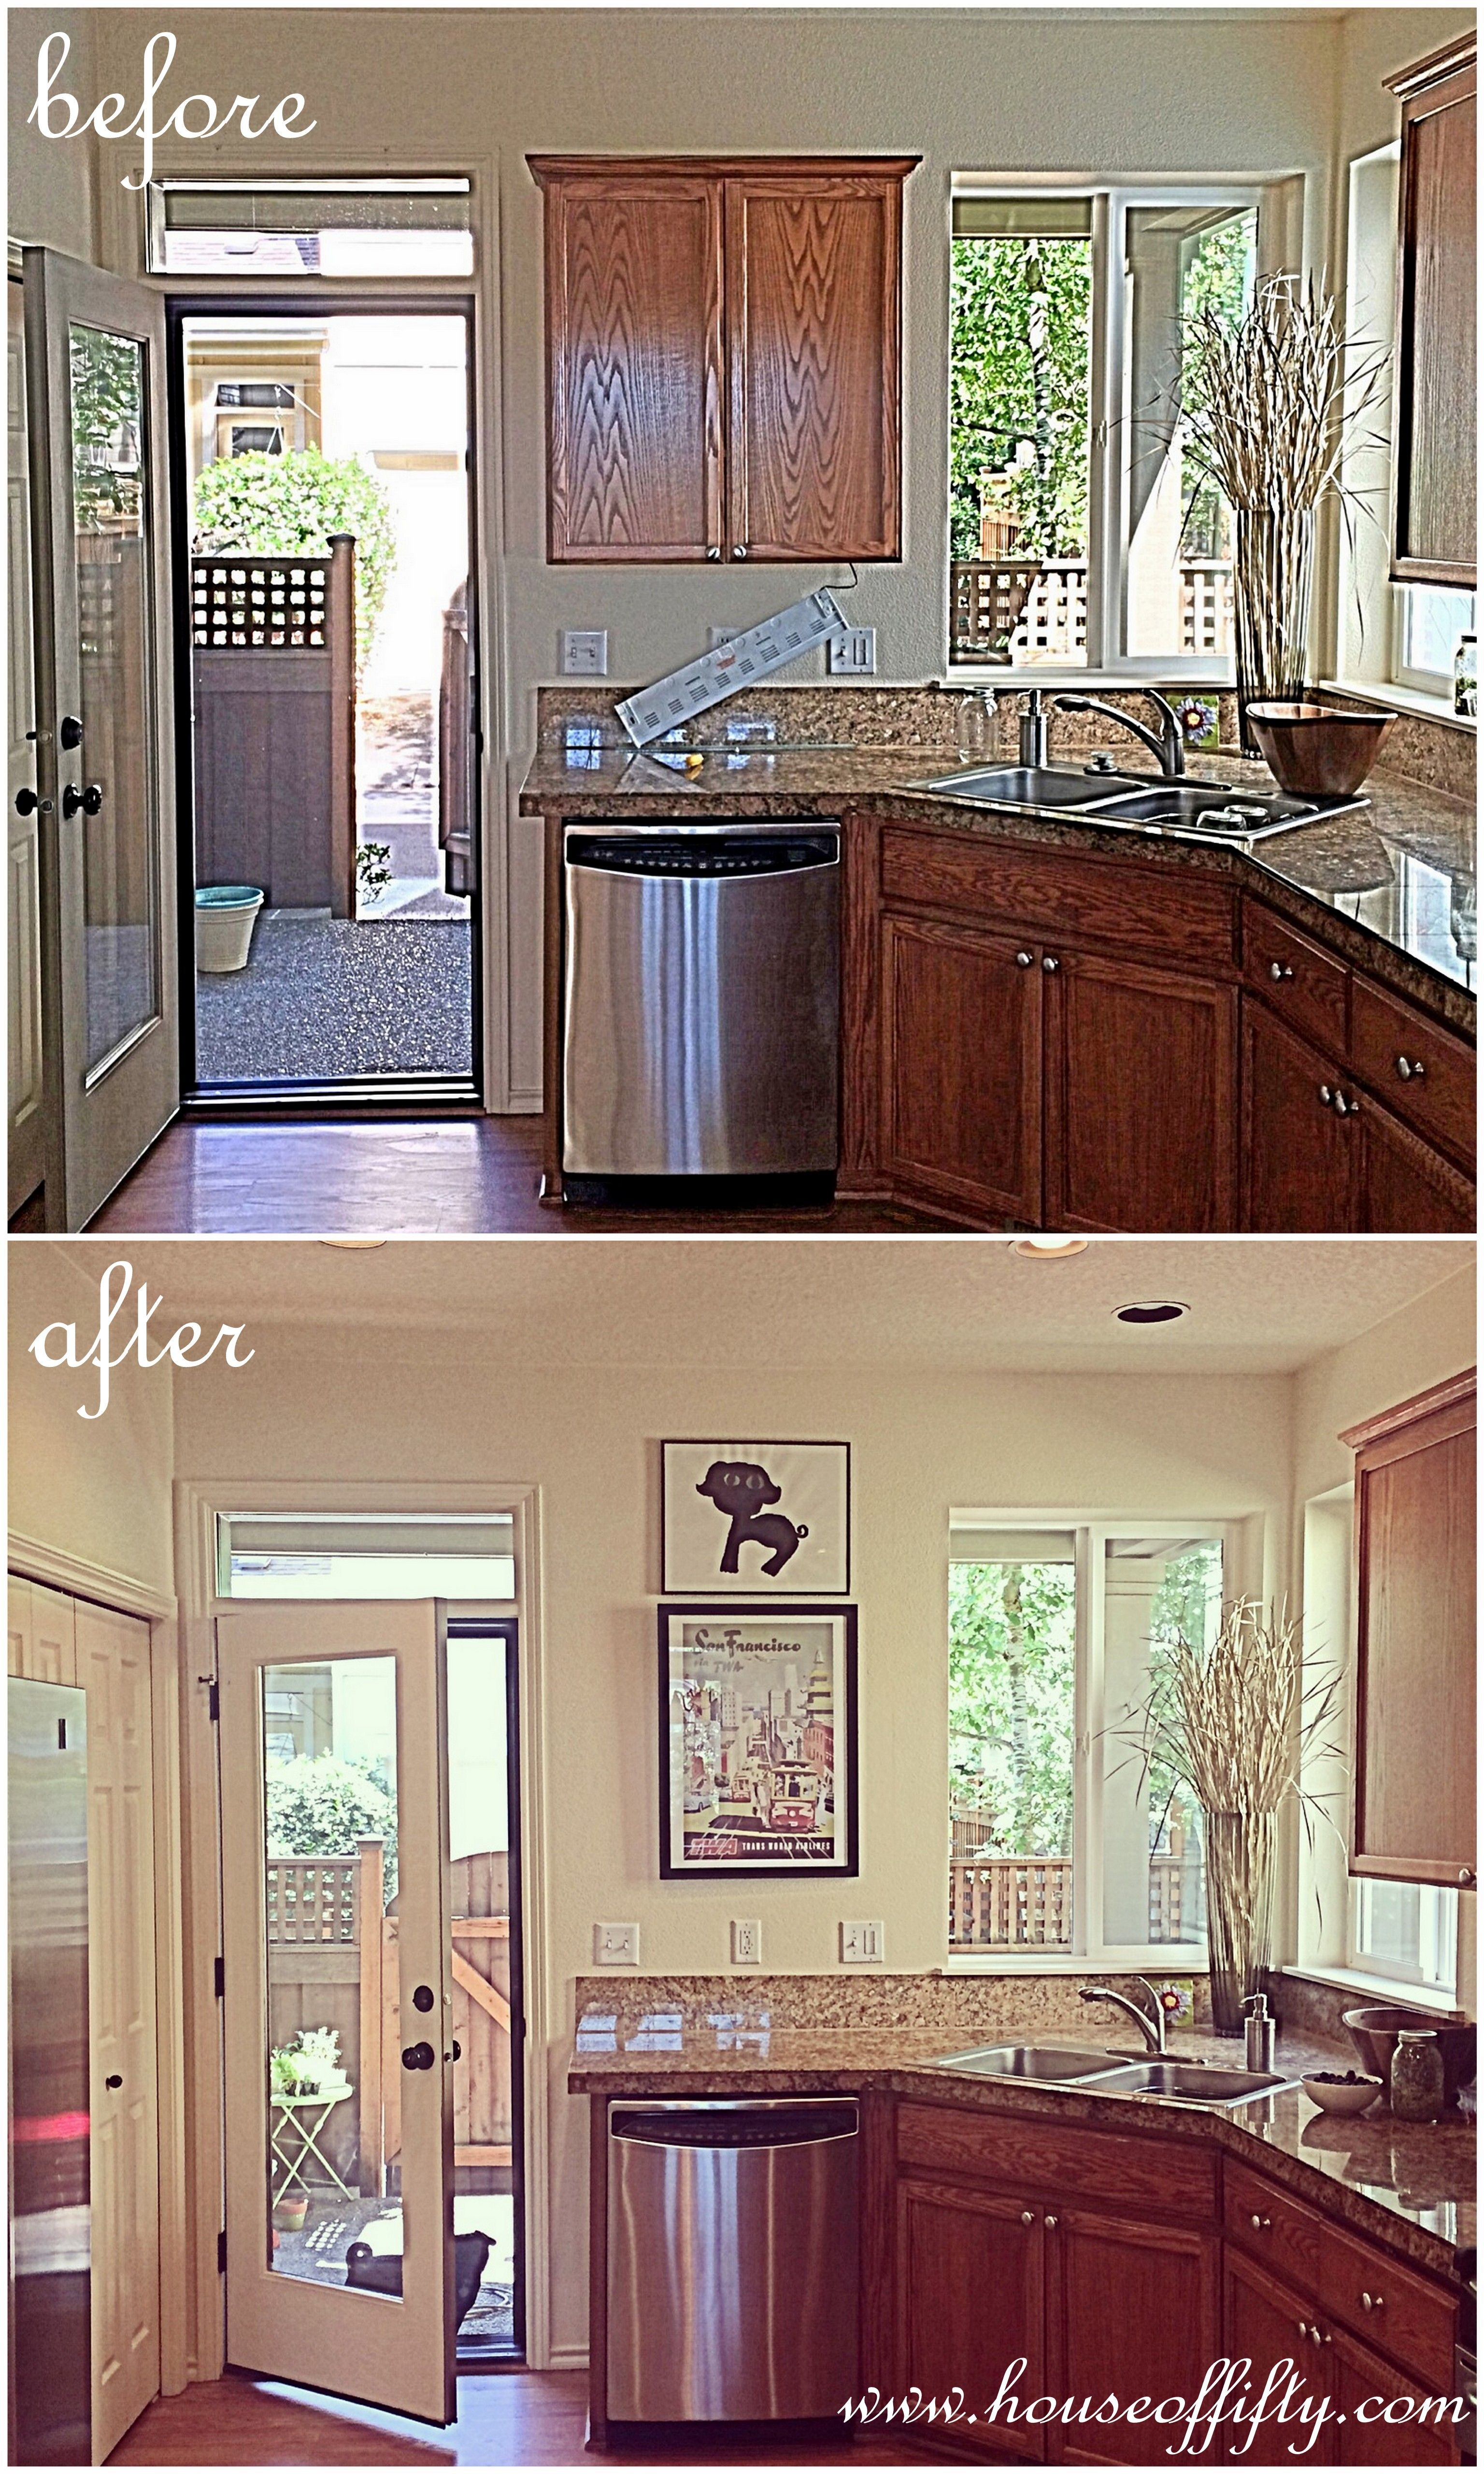 Taking Down A Random Wall Cabinet Creates A Sense Of More Space In A Small Kitchen